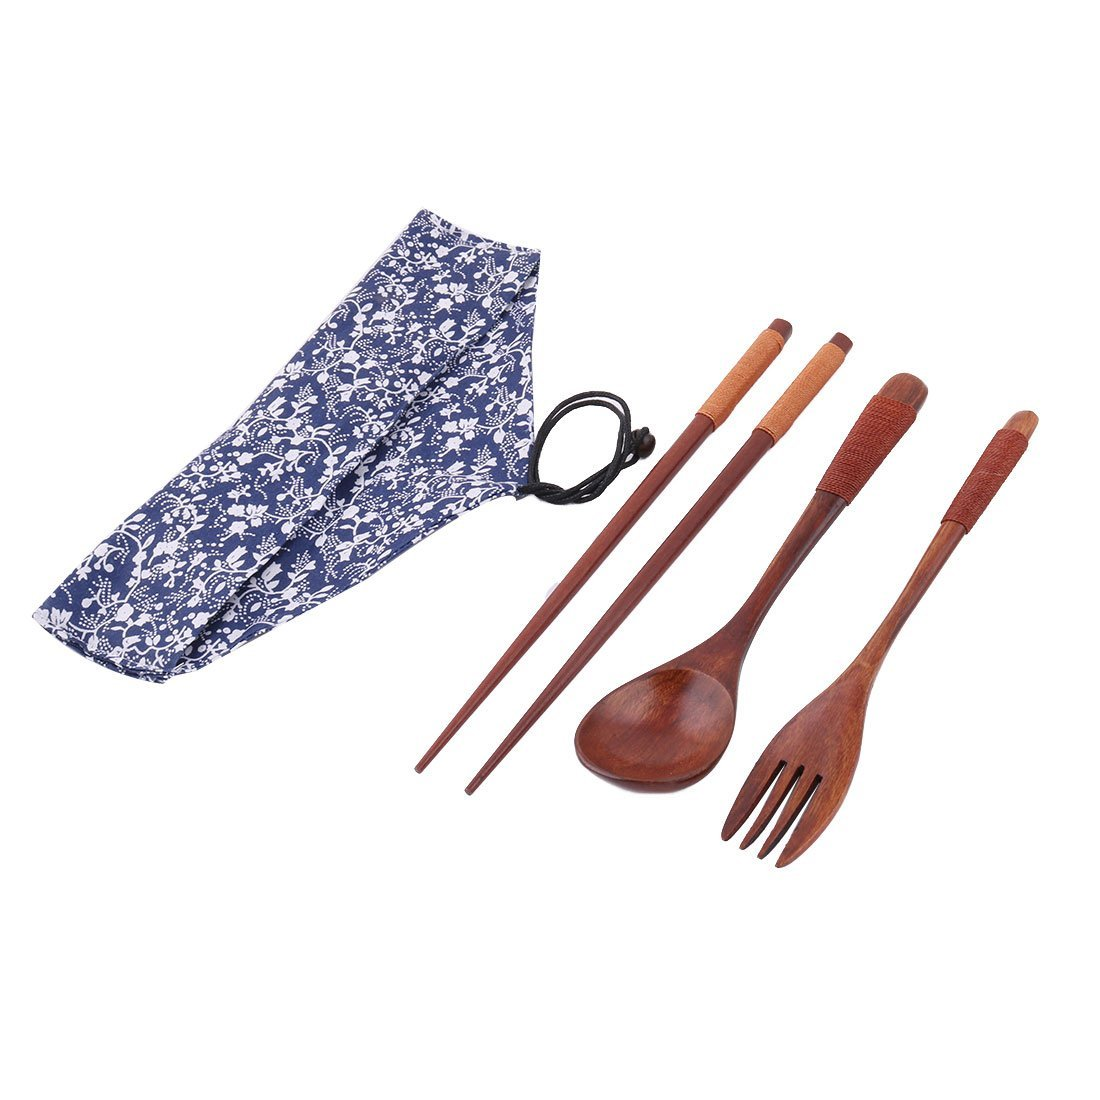 uxcell Outdoor Hiking Tableware Dinnerware Picnic Dinner Lunch Chopsticks Fork Spoon Set a17062300ux0222